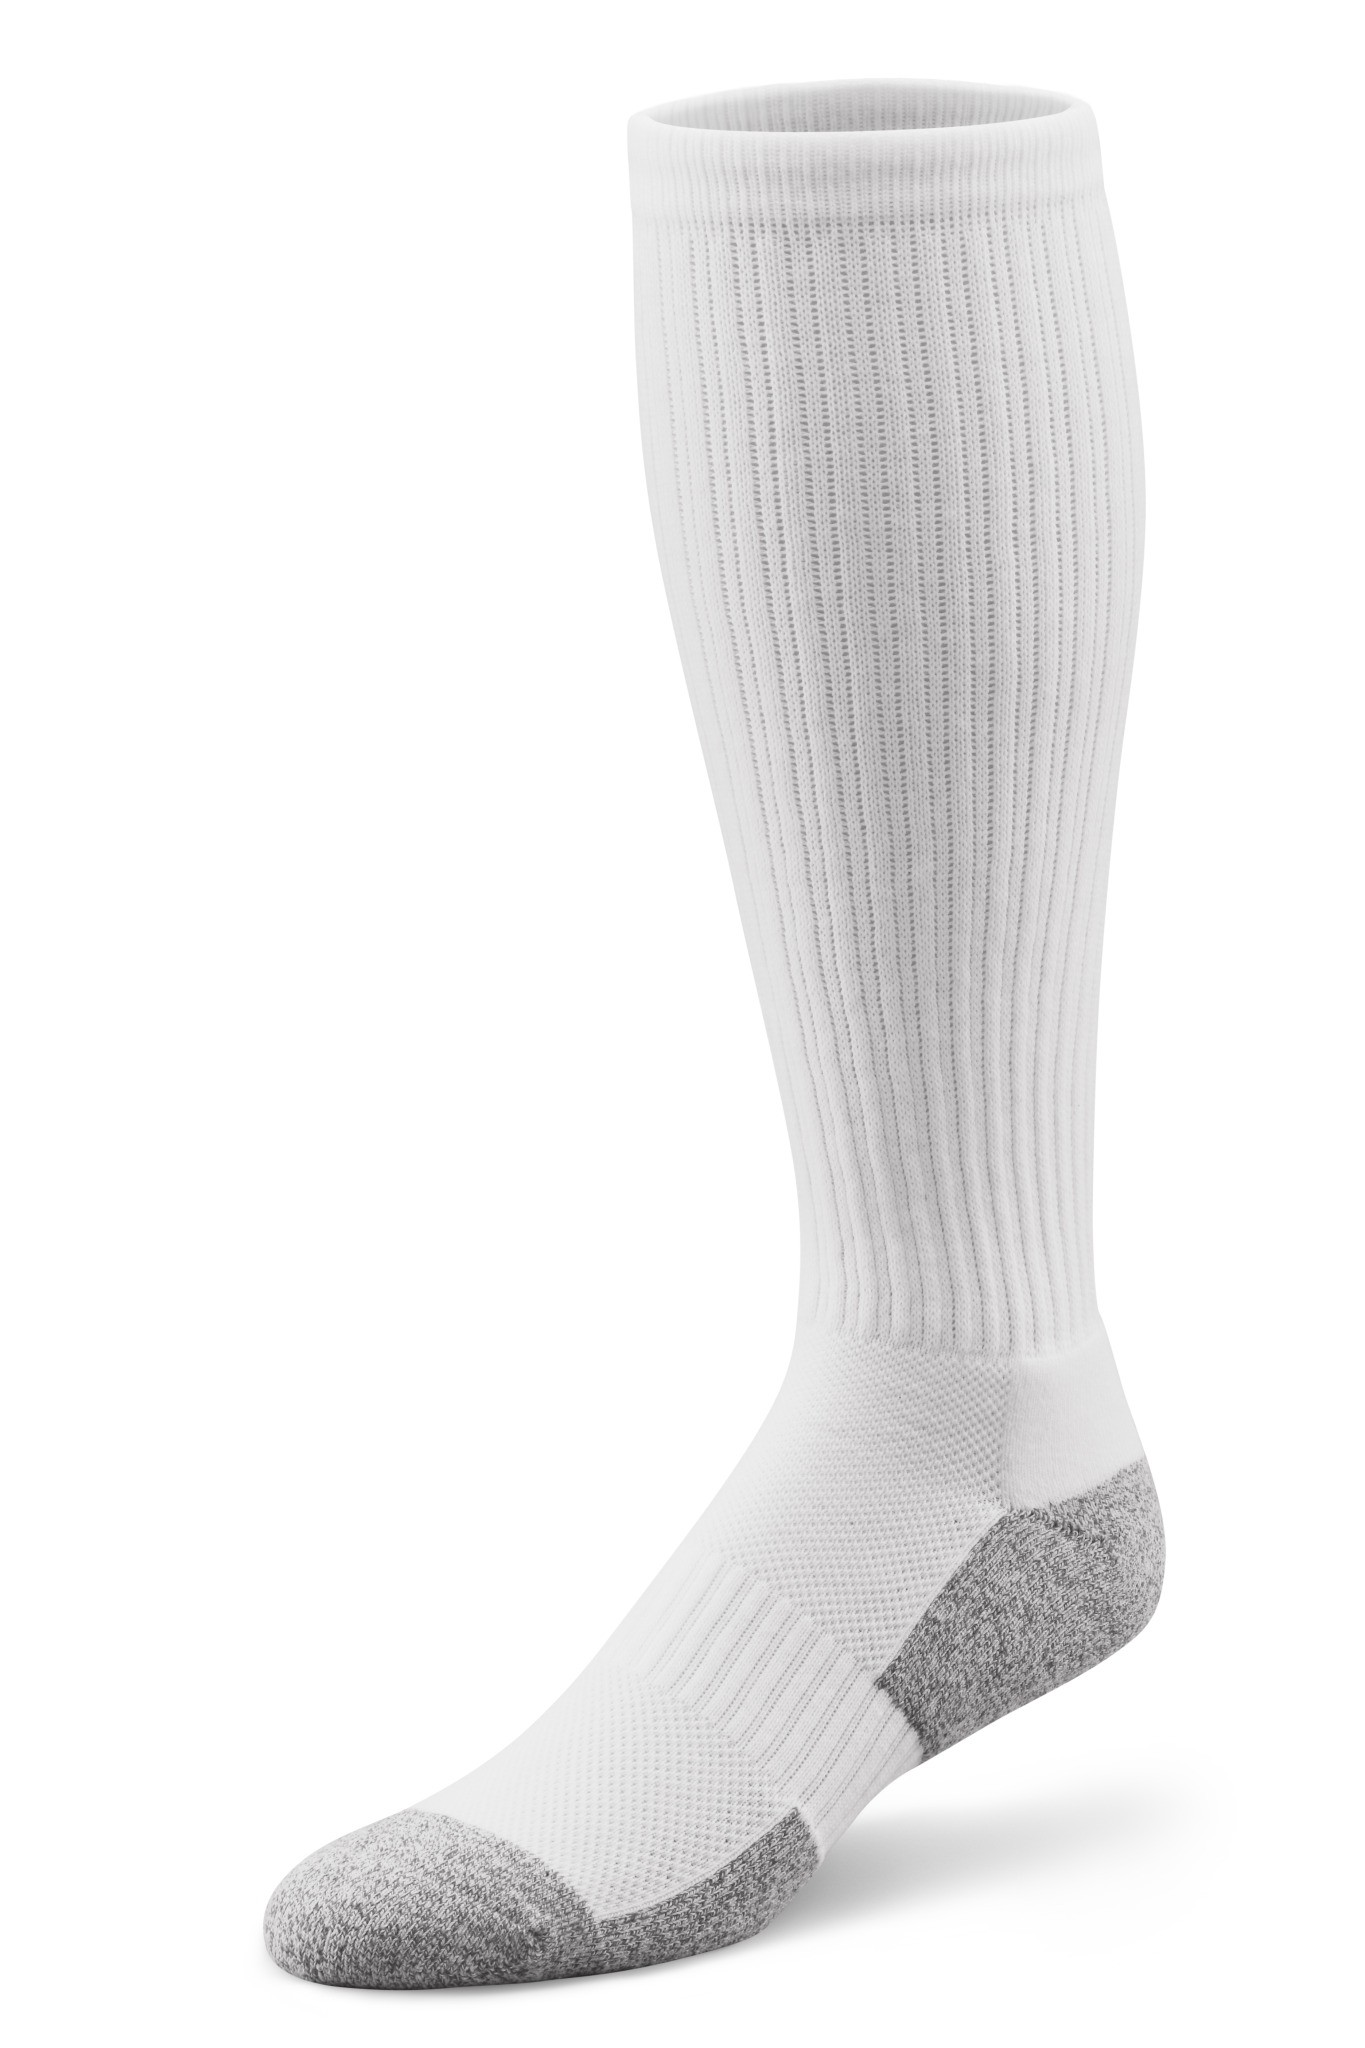 Dr Comfort Diabetic Over Calf Socks